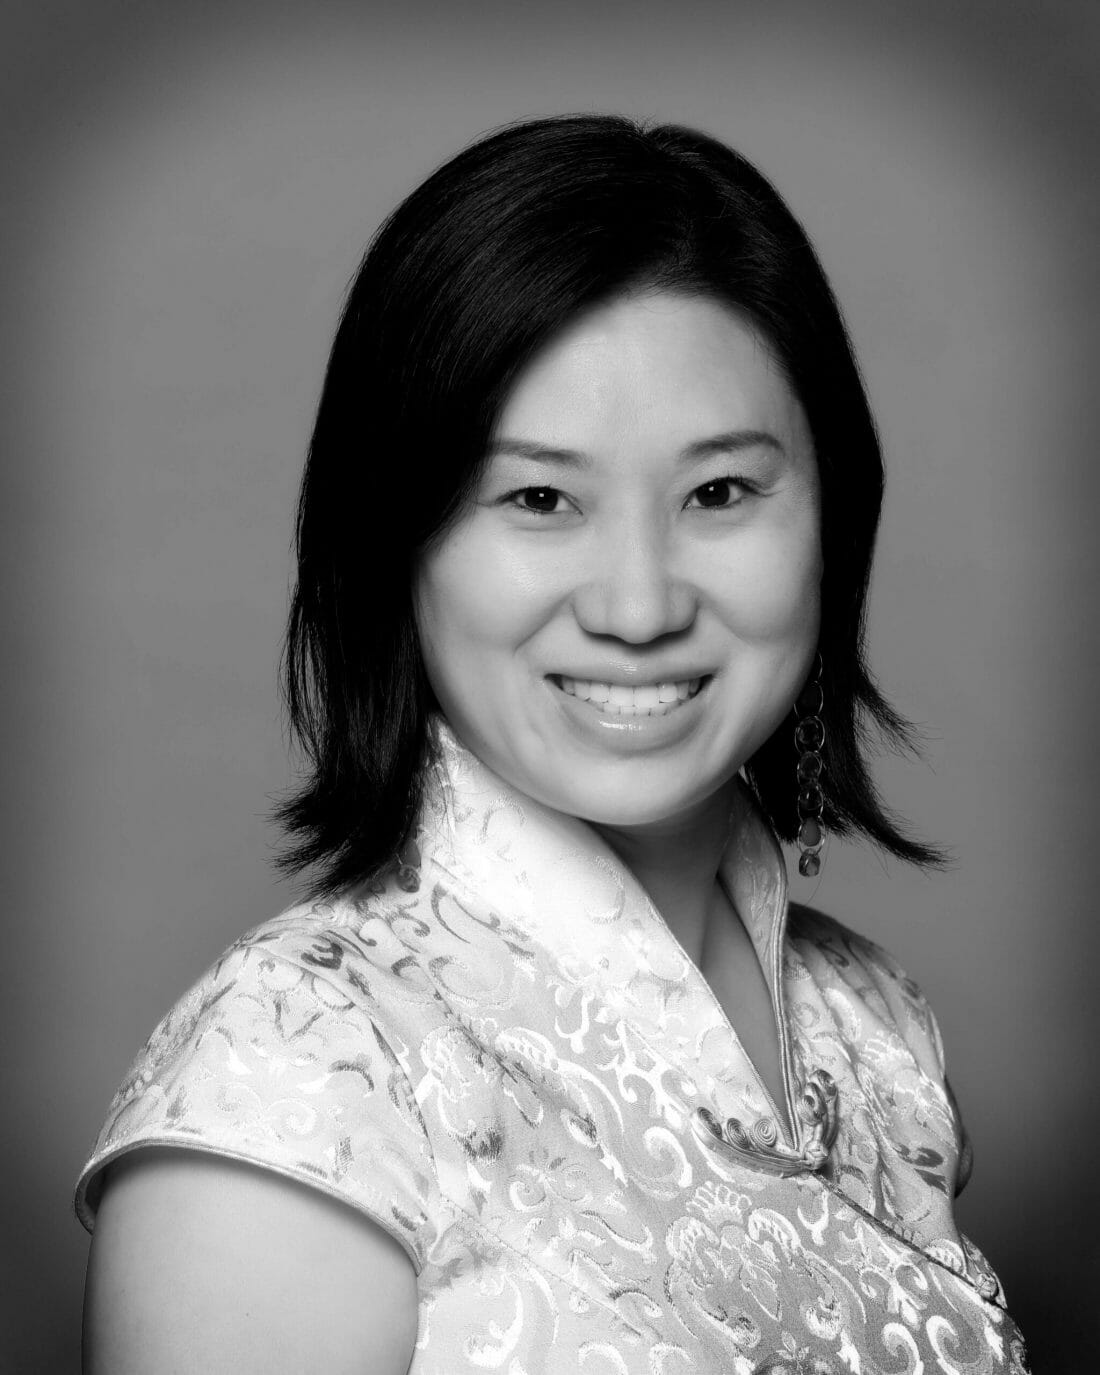 Black and White headshot photography of Asian Woman